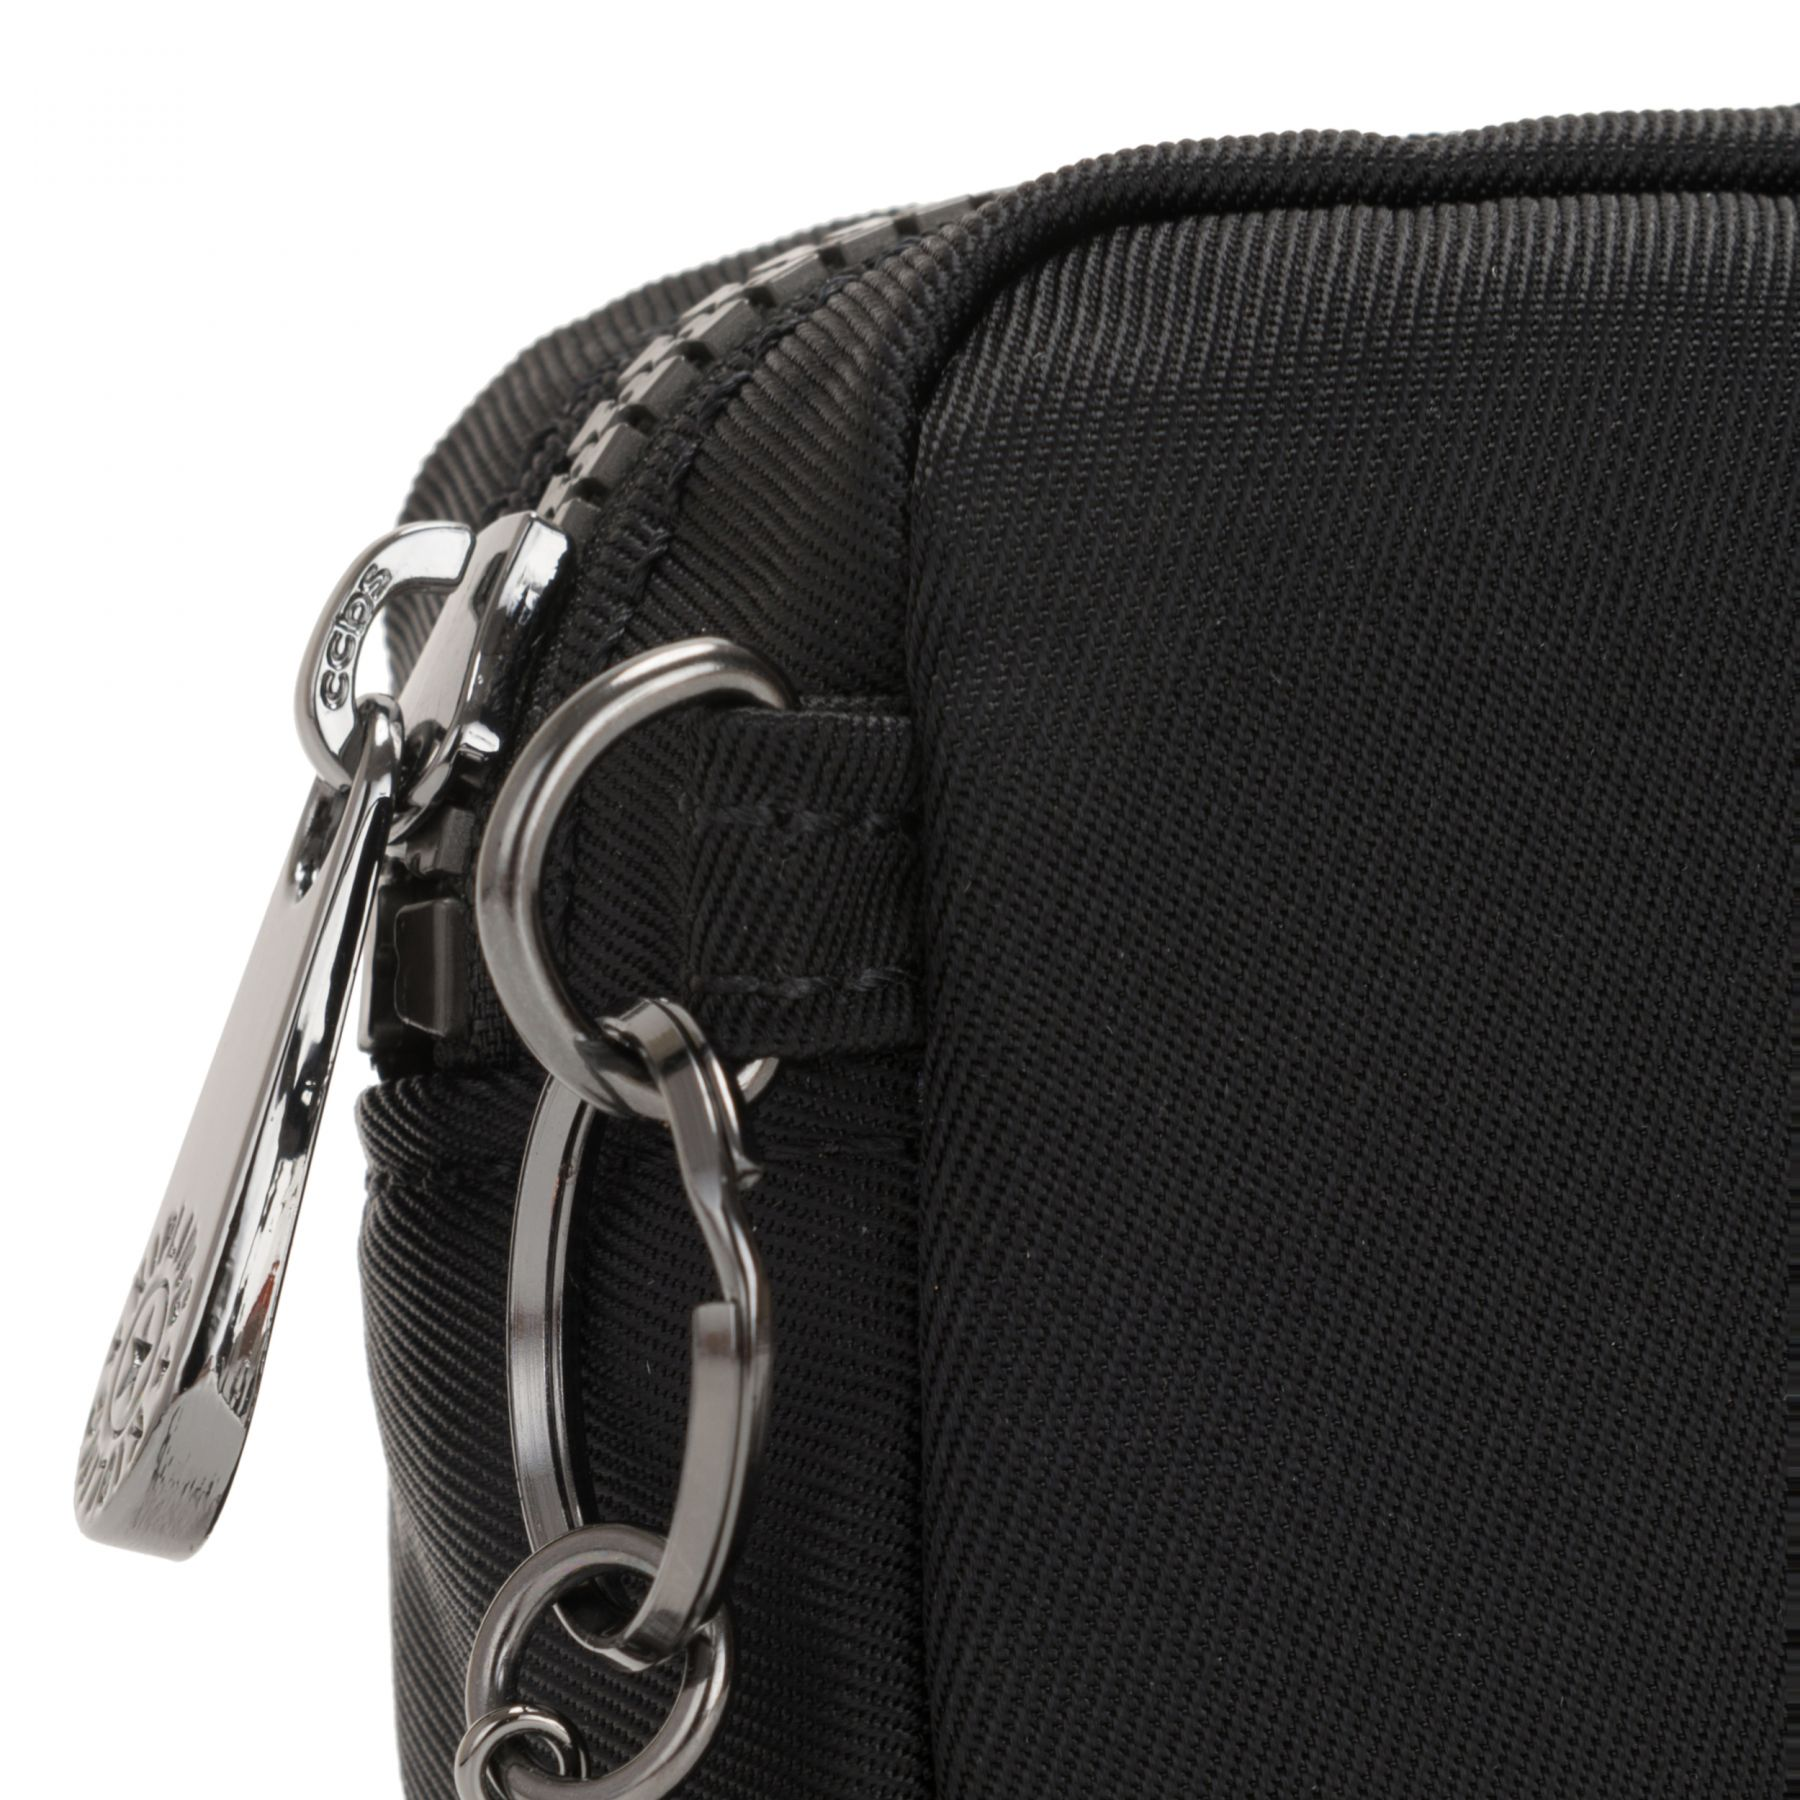 GLEAM S Latest Accessories by Kipling - view 5